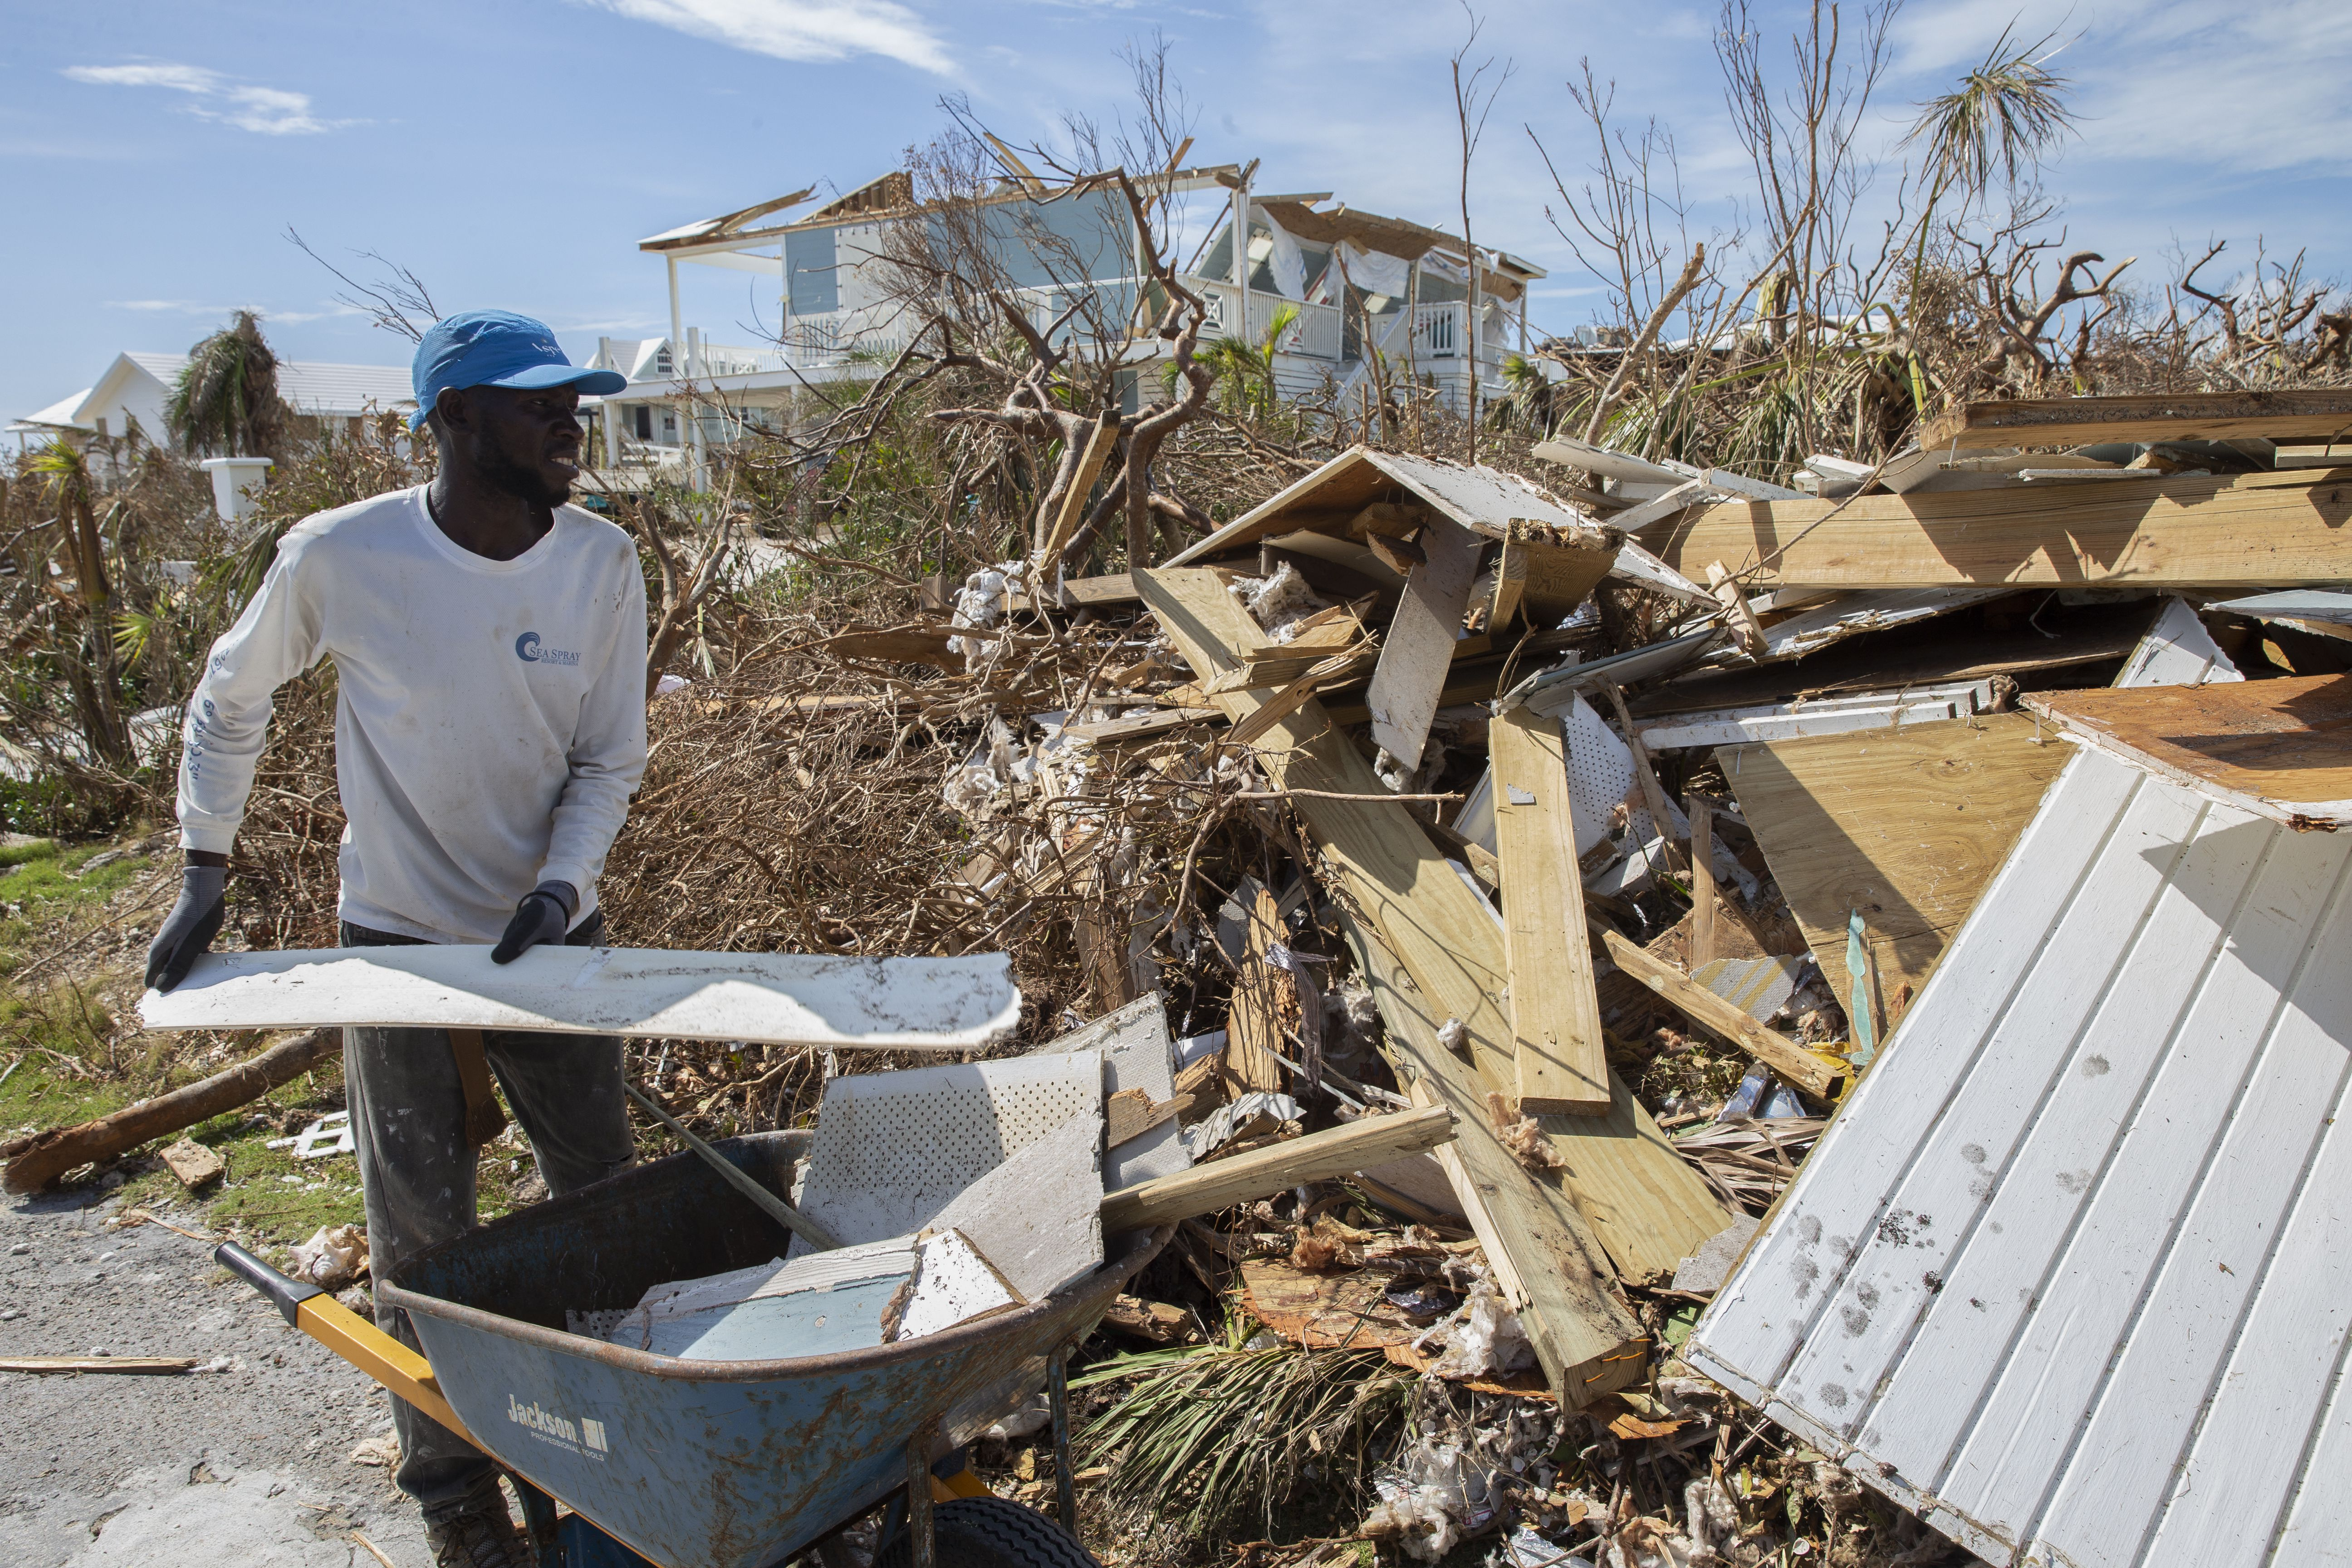 Eludieu Jnnoel collects rubble and debris from damaged homes after hurricane Dorian devastated Elbow Key Island on September 8, 2019 in Hope Town, Bahamas.